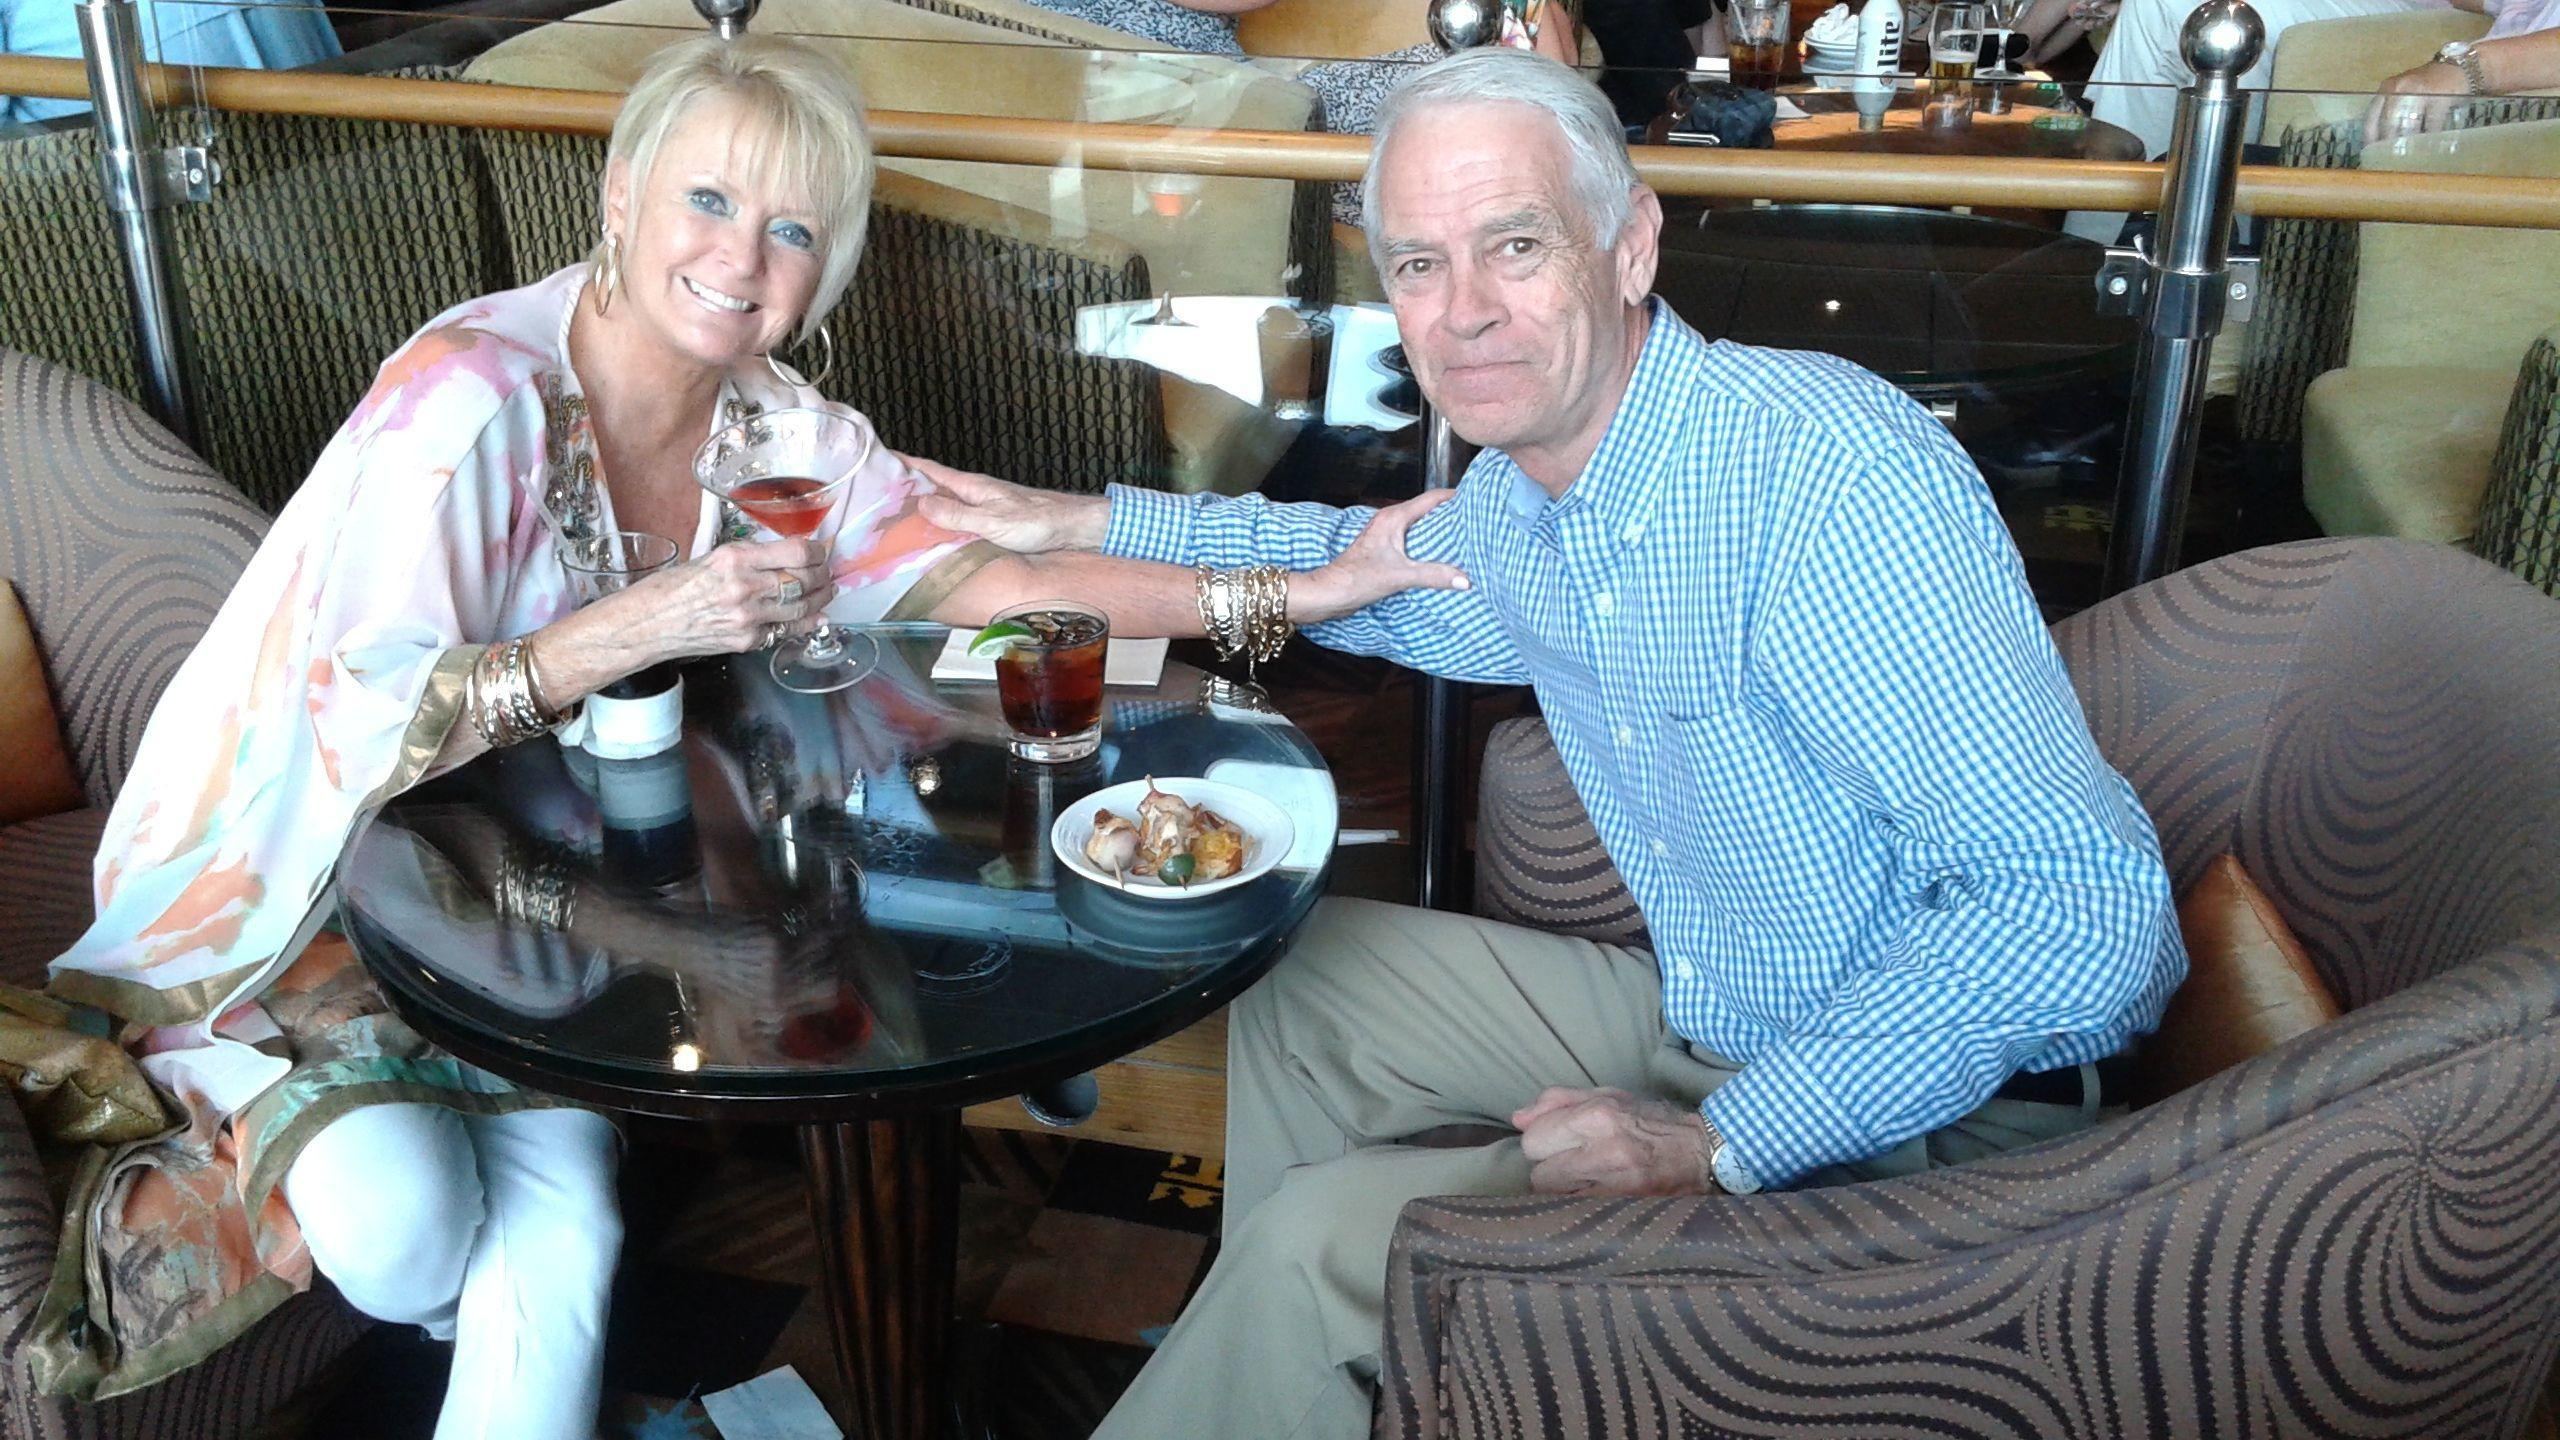 meet palm beach county singles A couple of weeks ago, we chronicled the top pickup spots in palm beach county, locales where singles feeling frisky, risky, and perhaps a wee bit.